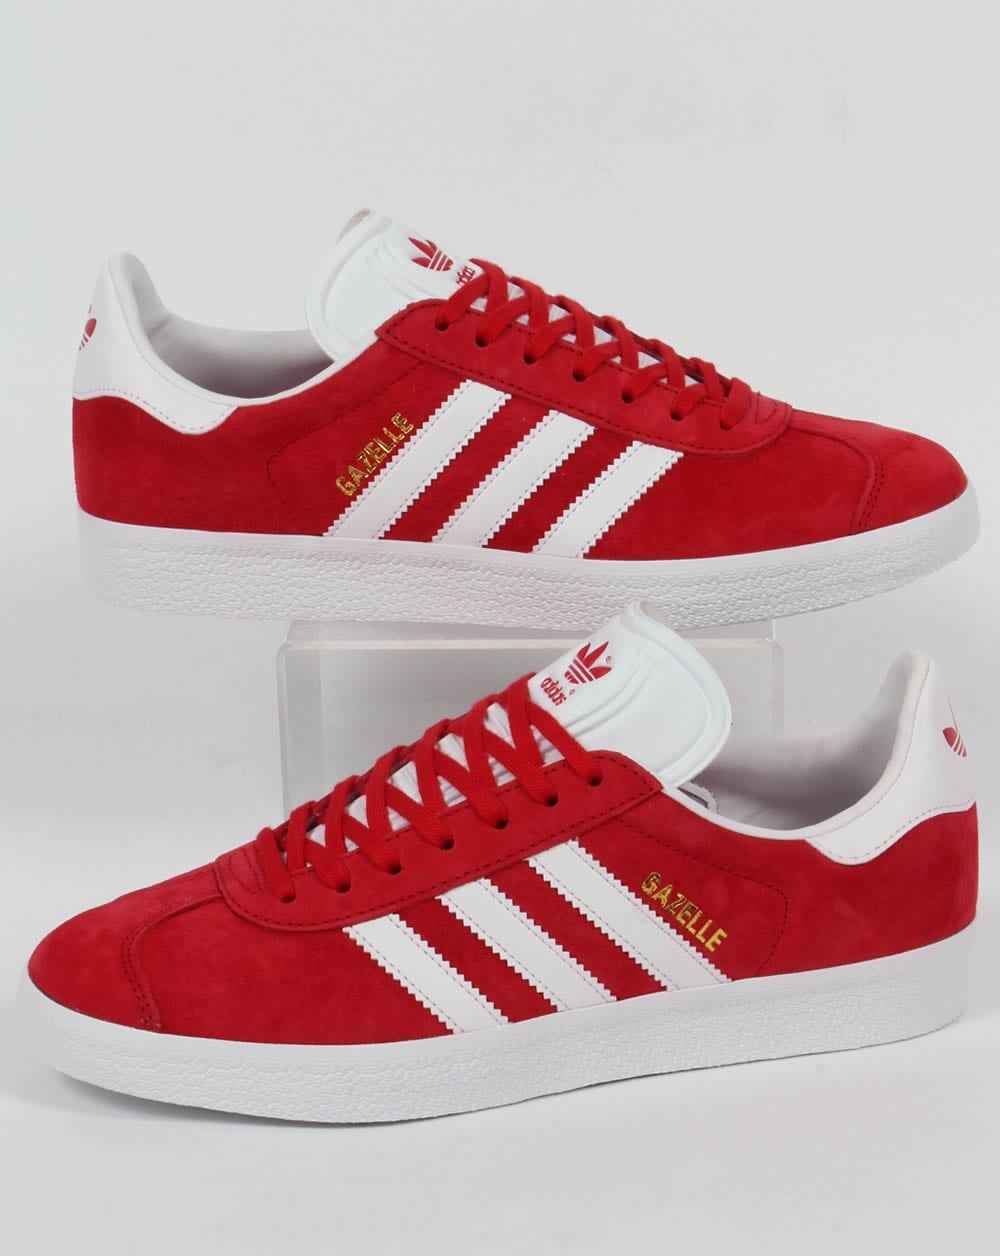 http://www.80scasualclassics.co.uk/images/adidas-gazelle-trainers-power-red-white-p6263-51904_image.jpg